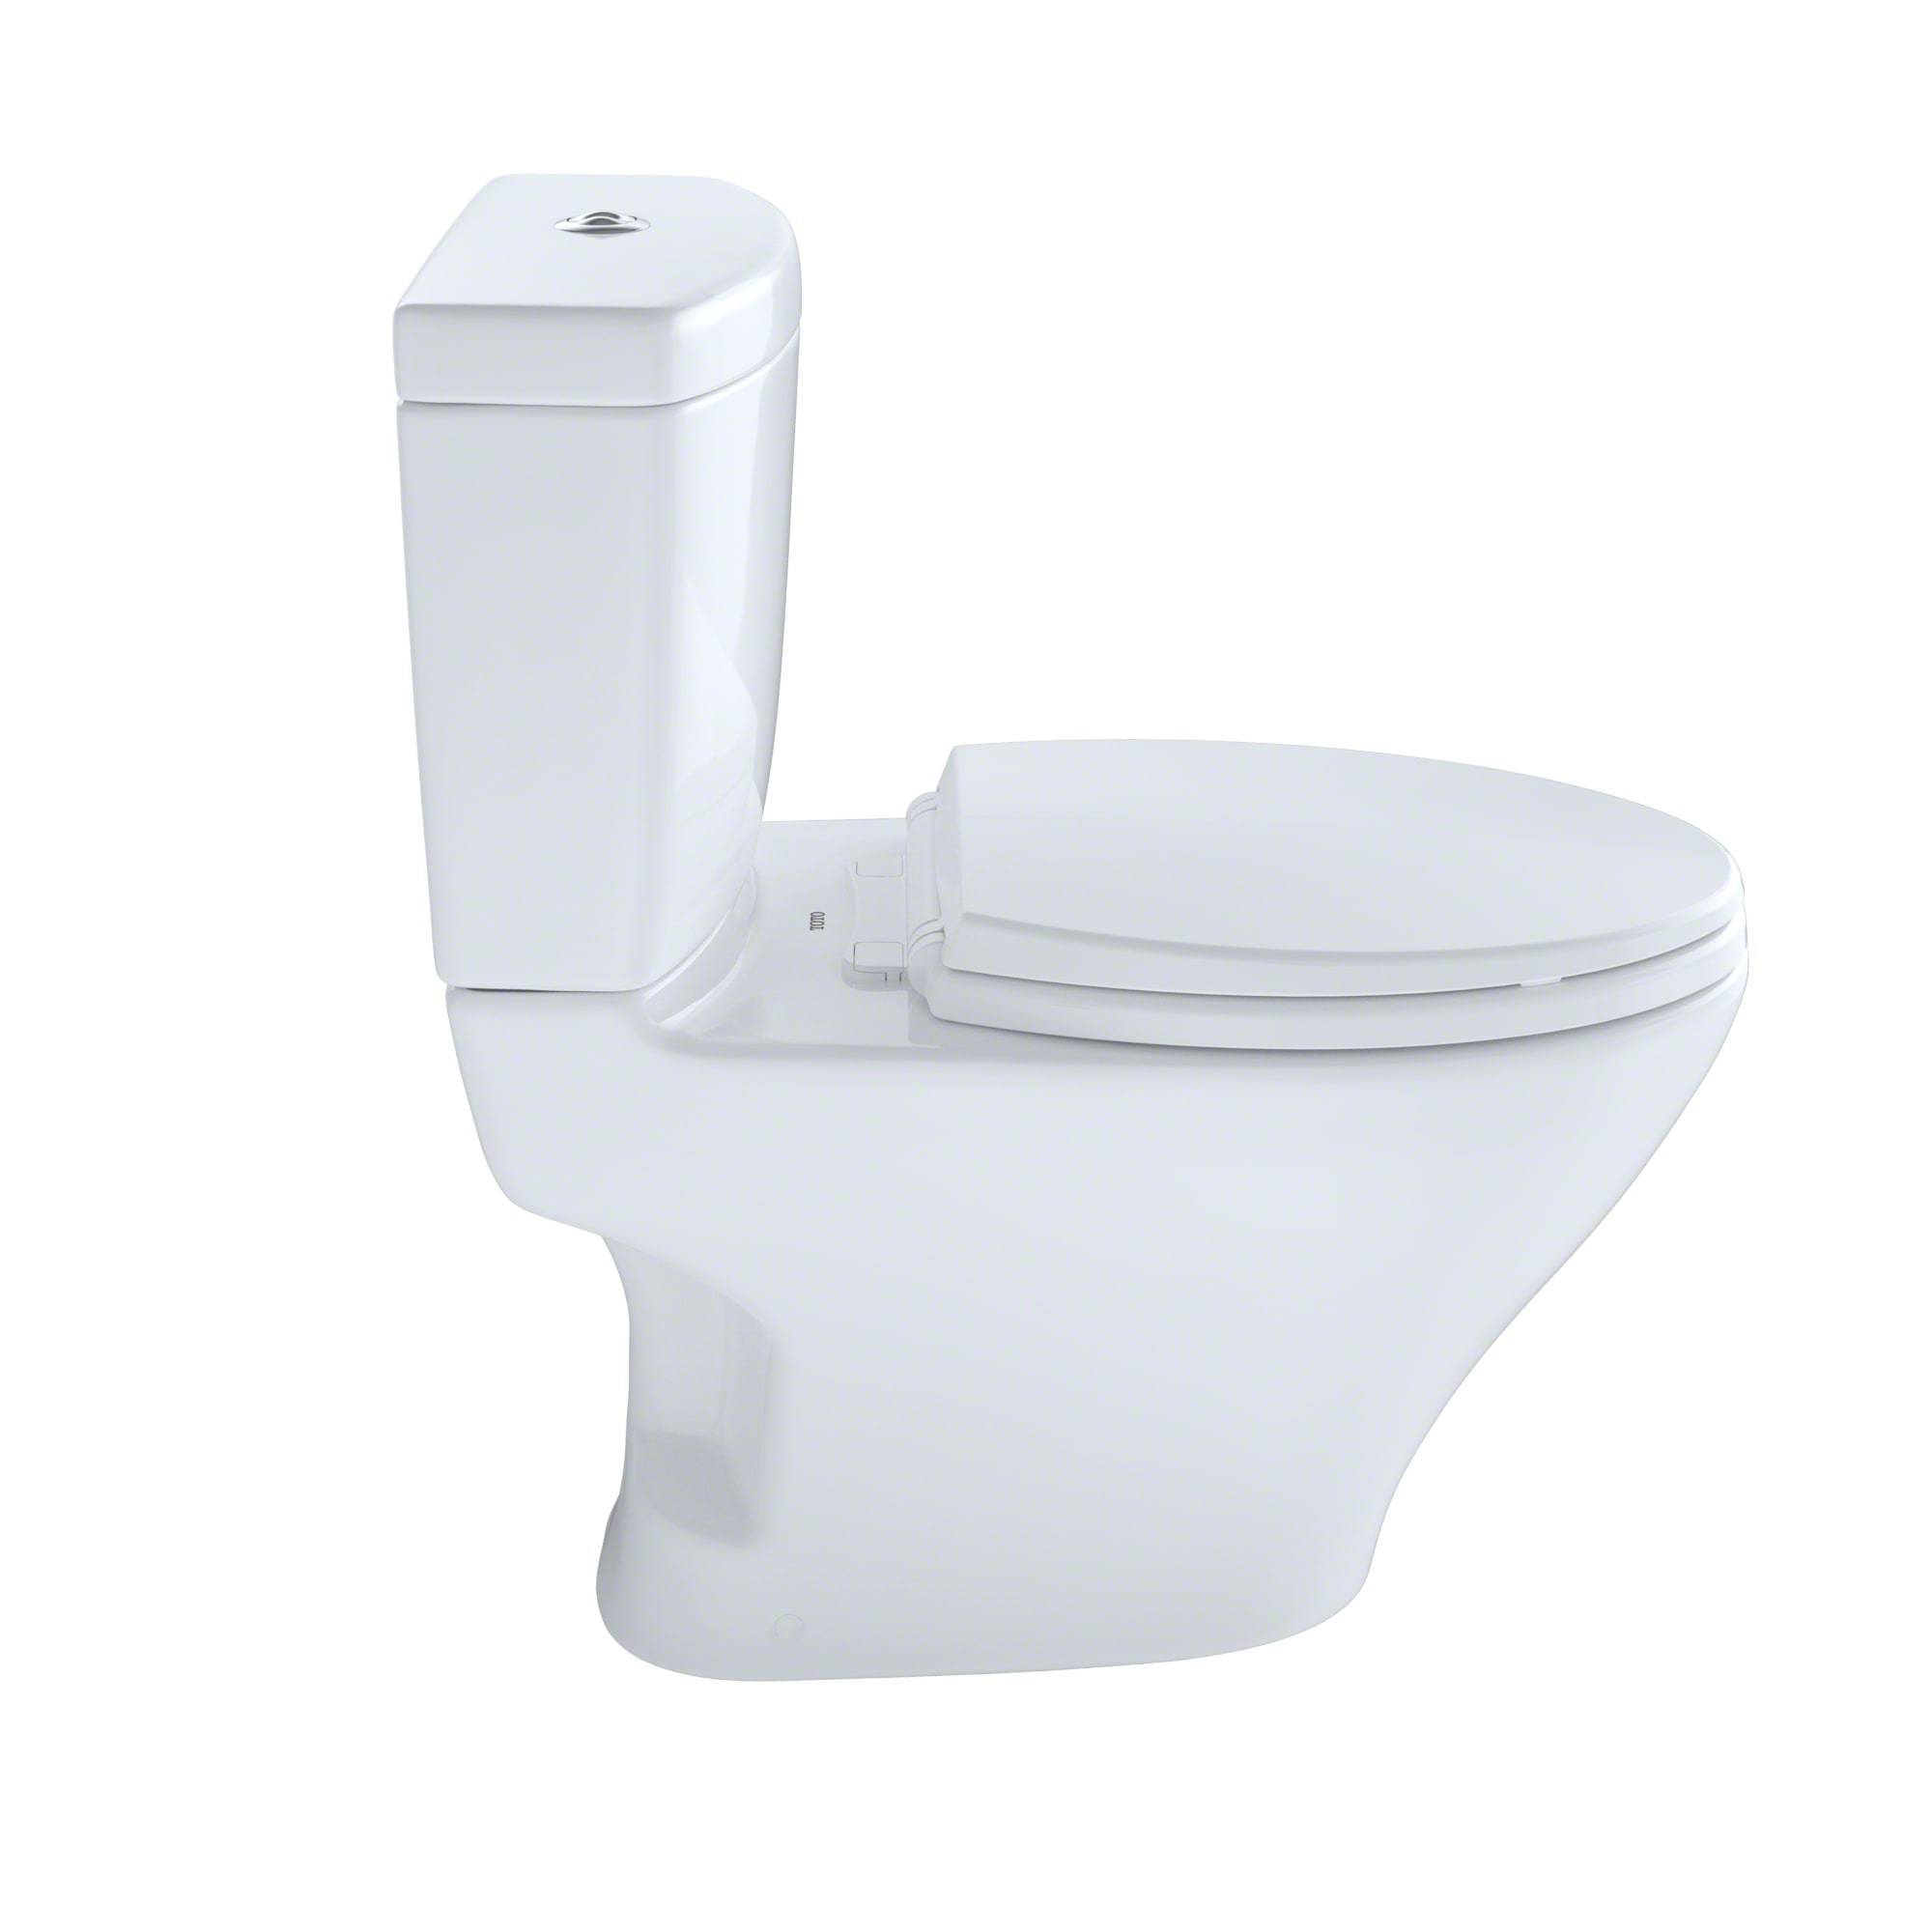 Toto CST416M01 Aquia 2 Piece Cotton White Double Flush Toilet